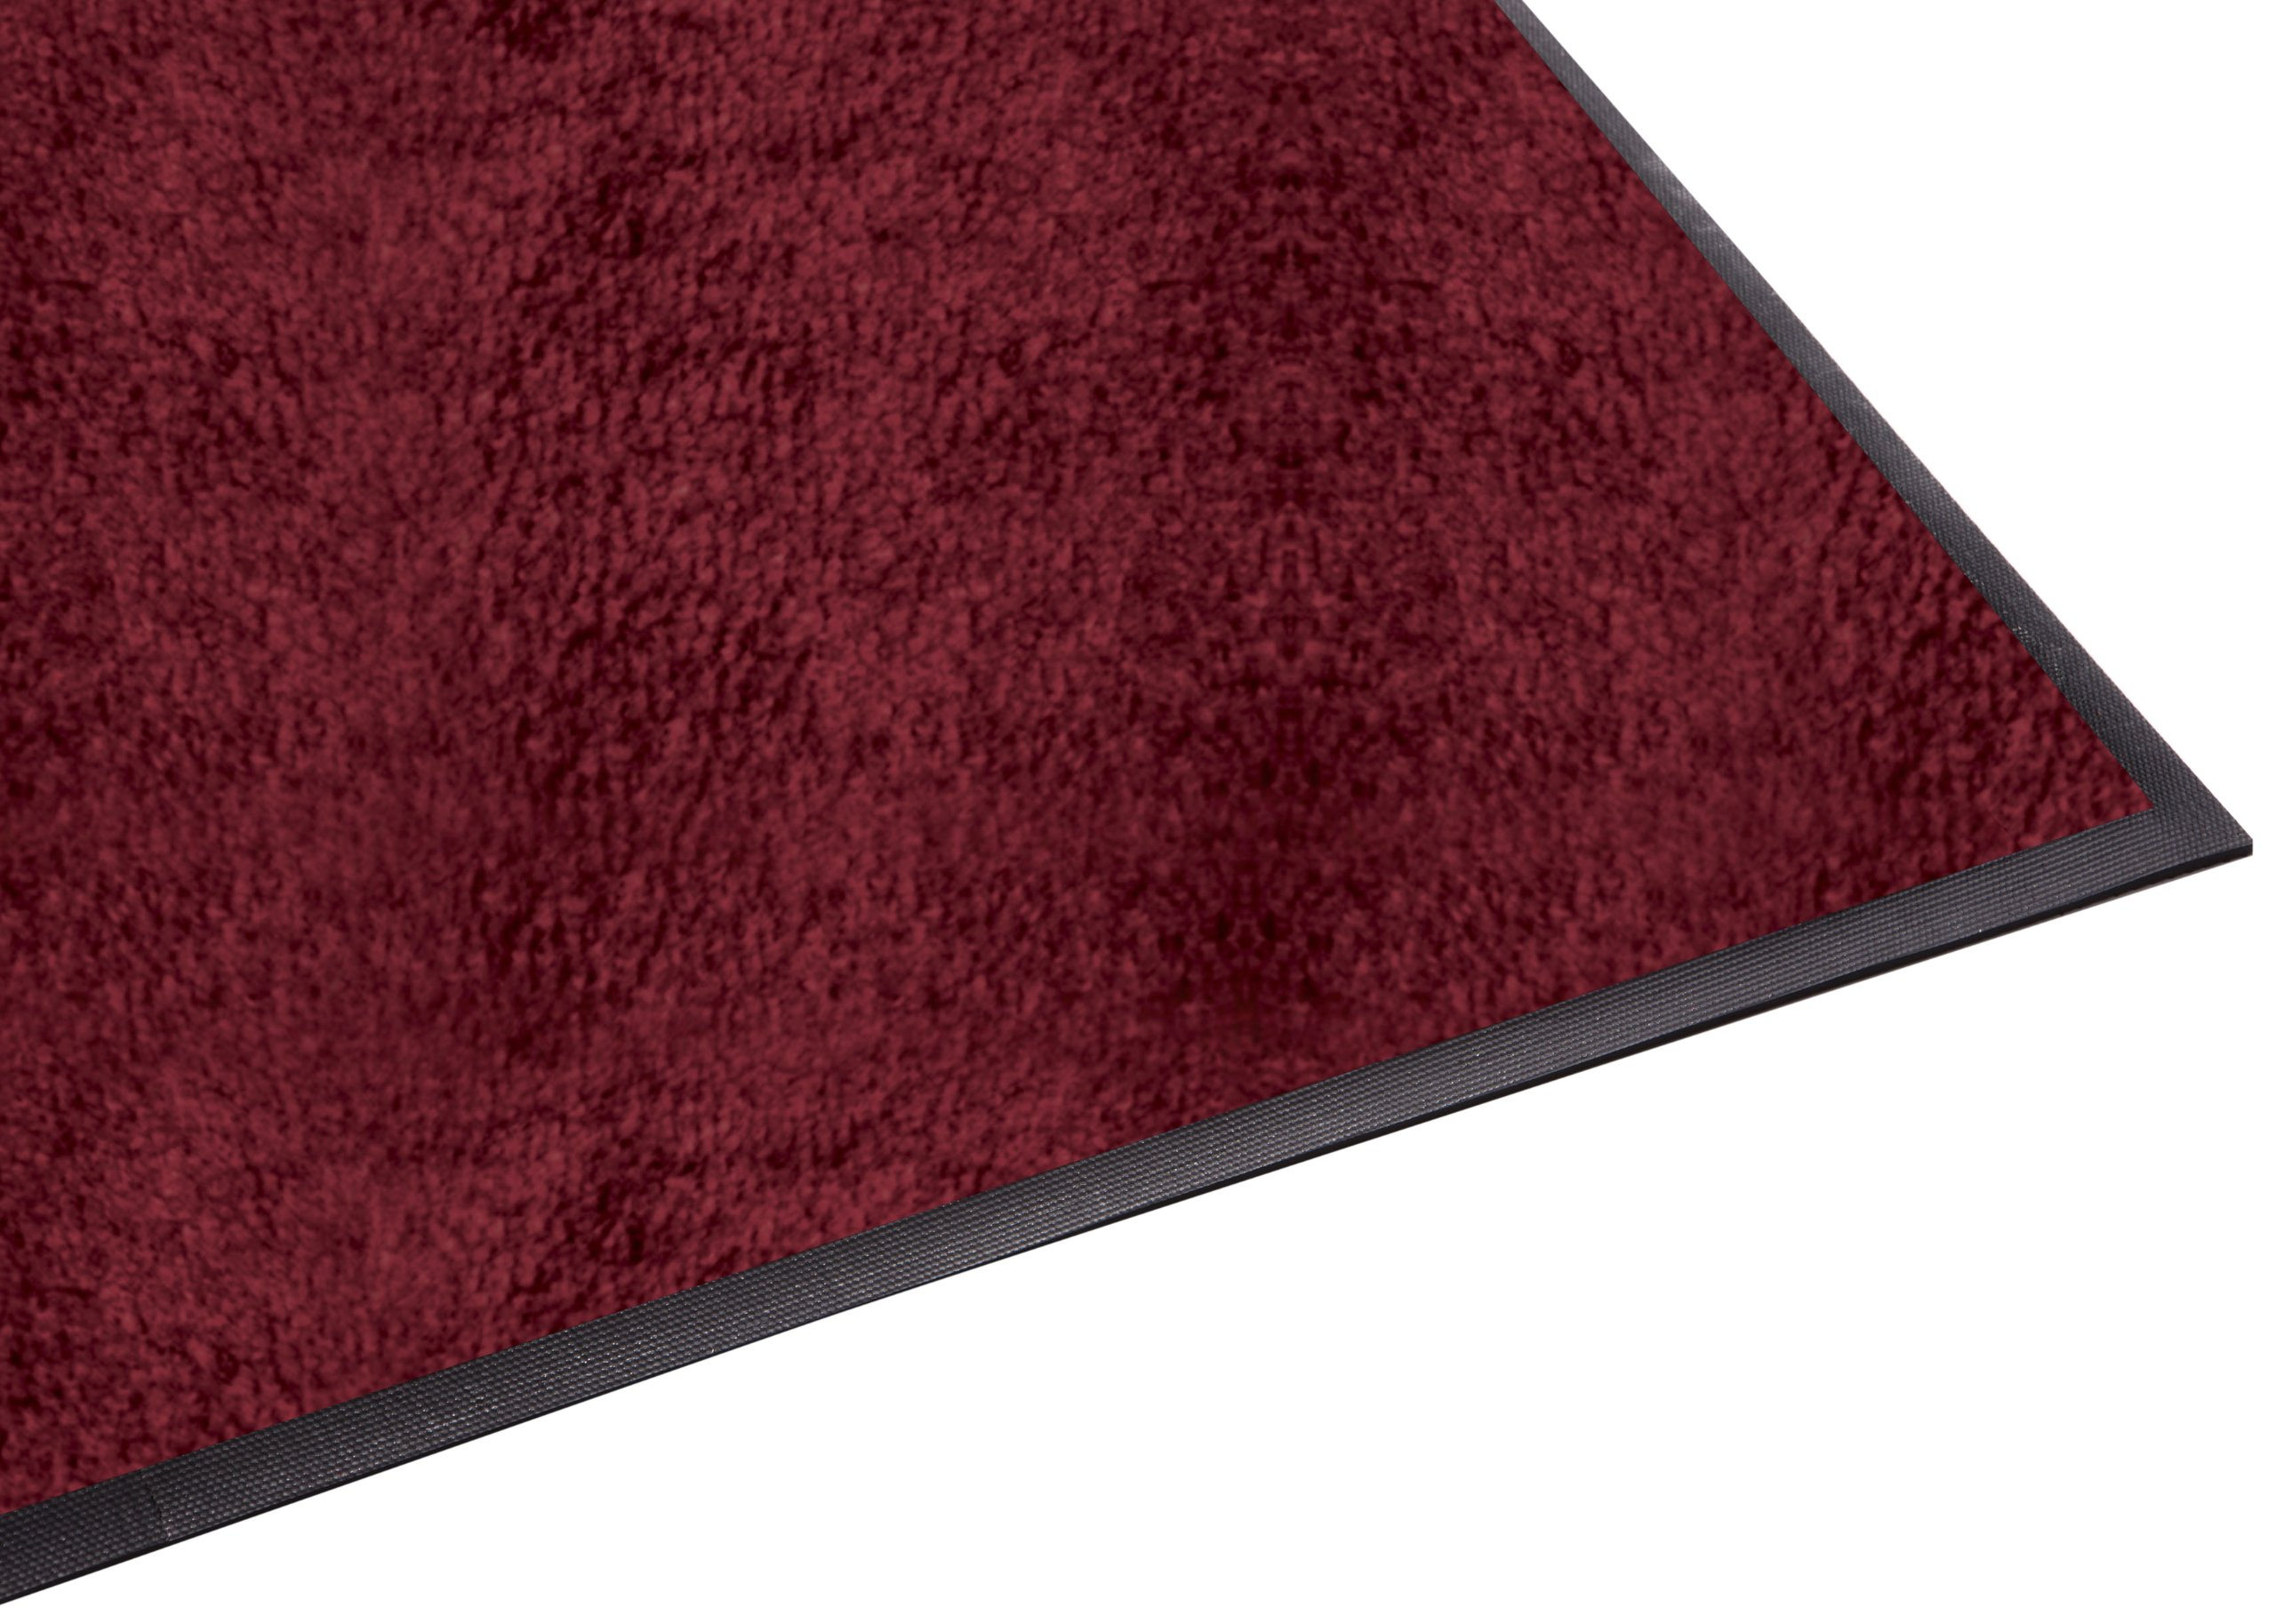 Guardian Platinum Series Indoor Wiper Floor Mat, Rubber with Nylon Carpet, 6'x8', Burgundy